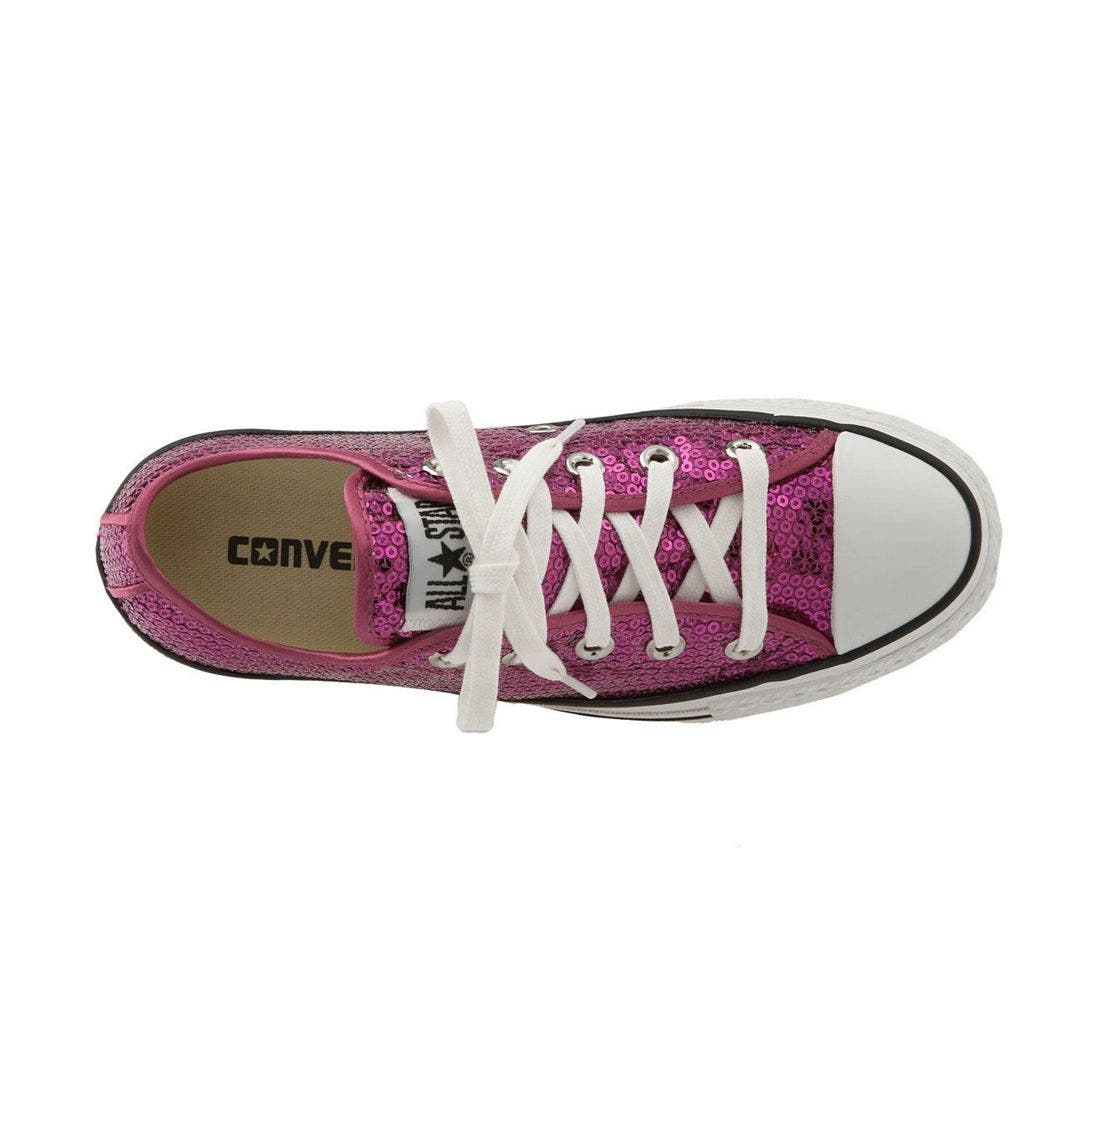 CONVERSE,                             Chuck Taylor<sup>®</sup> Sequined Sneaker,                             Alternate thumbnail 2, color,                             606